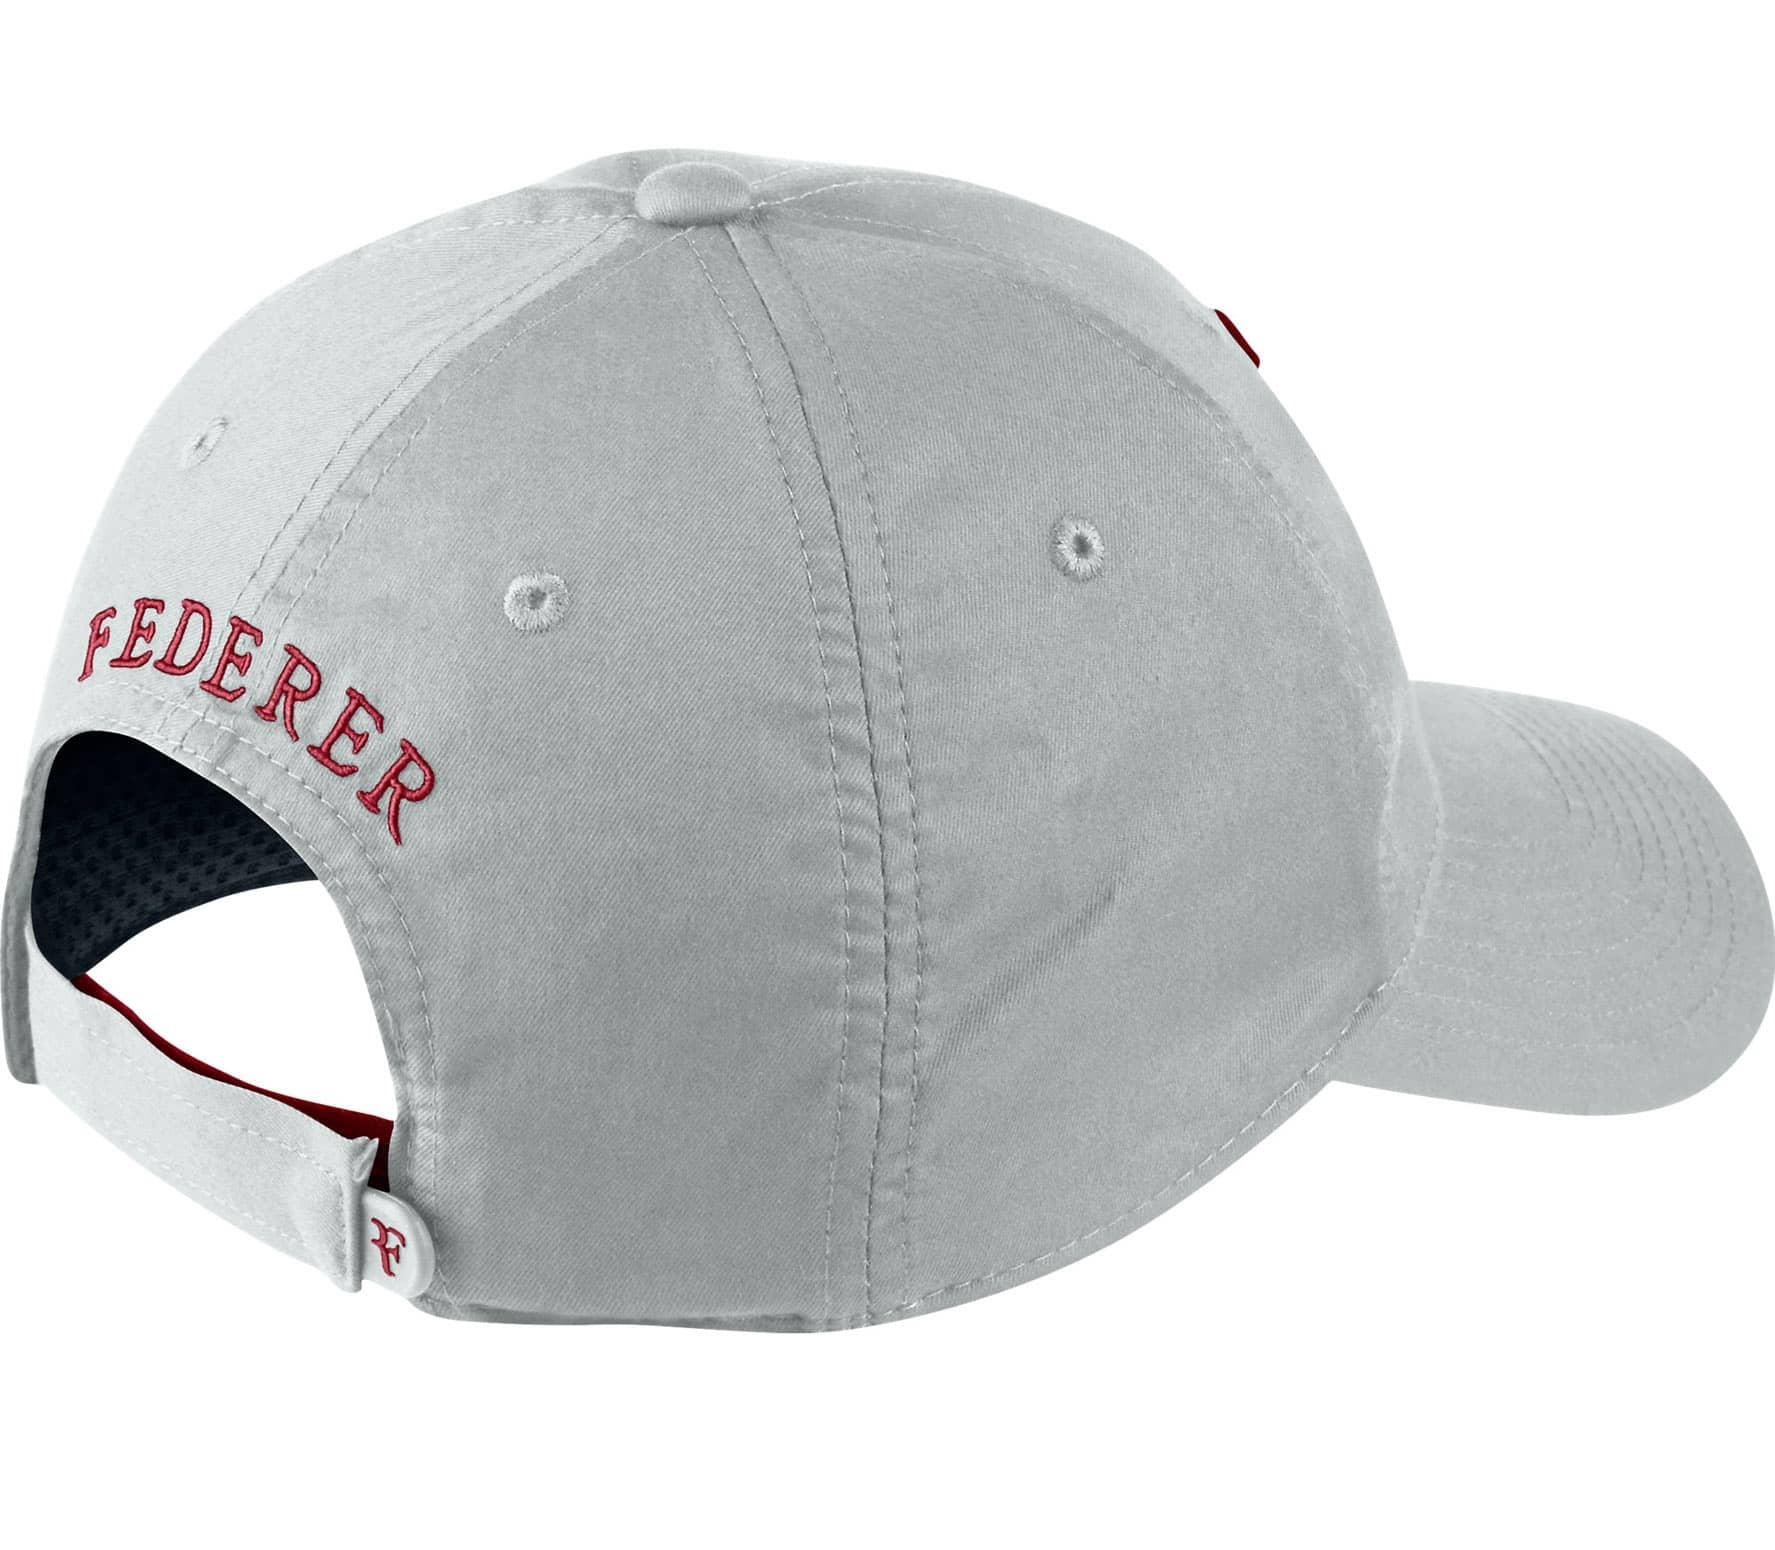 Nike - Hybrid Roger Federer Tennis cap (grey red) - buy it at the ... 29e99aefdab